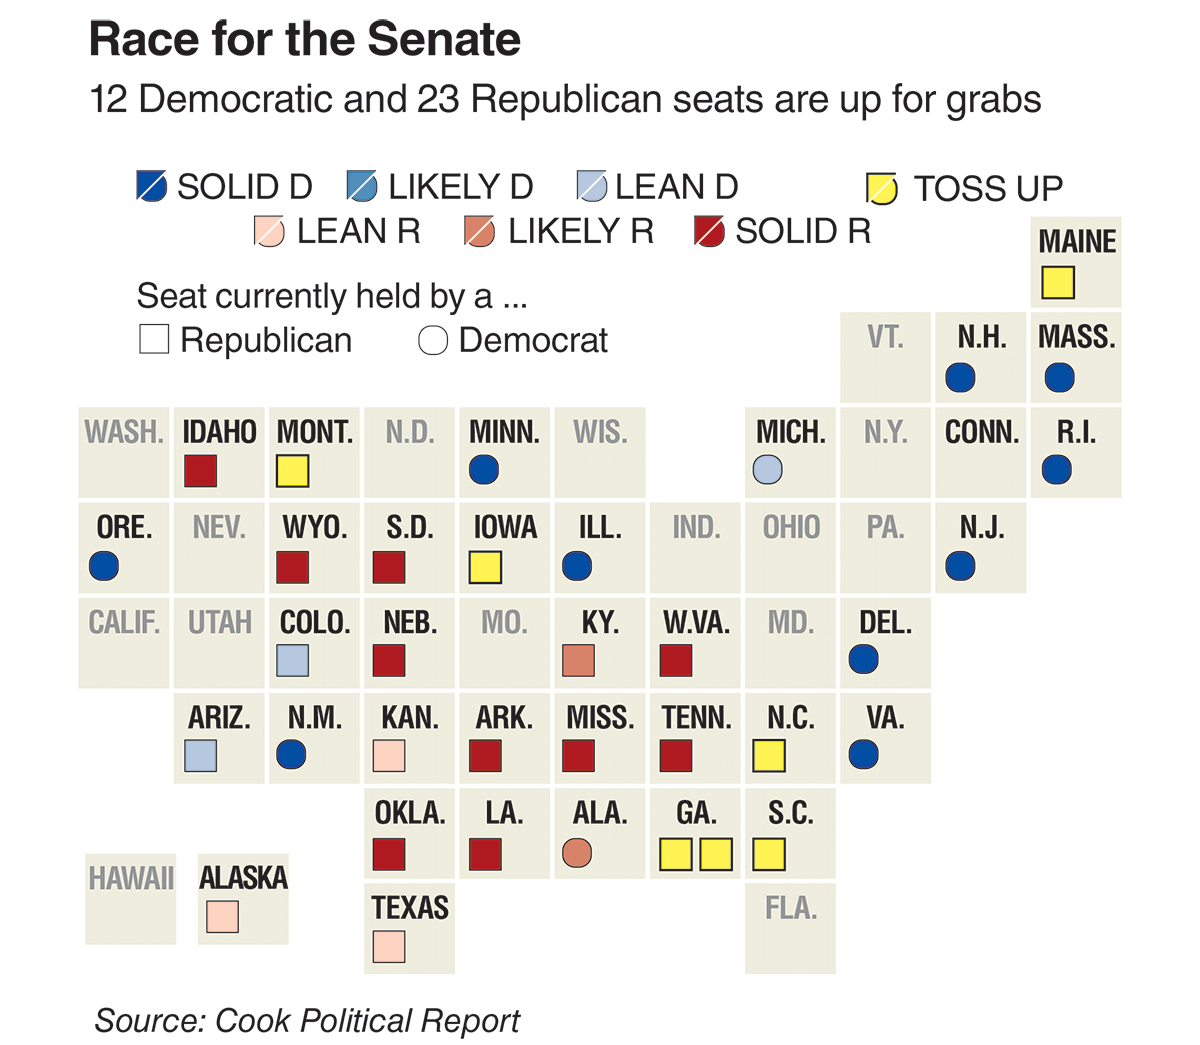 Race for the Senate: 12 Democratic and 23 Republican seats are up for grabs